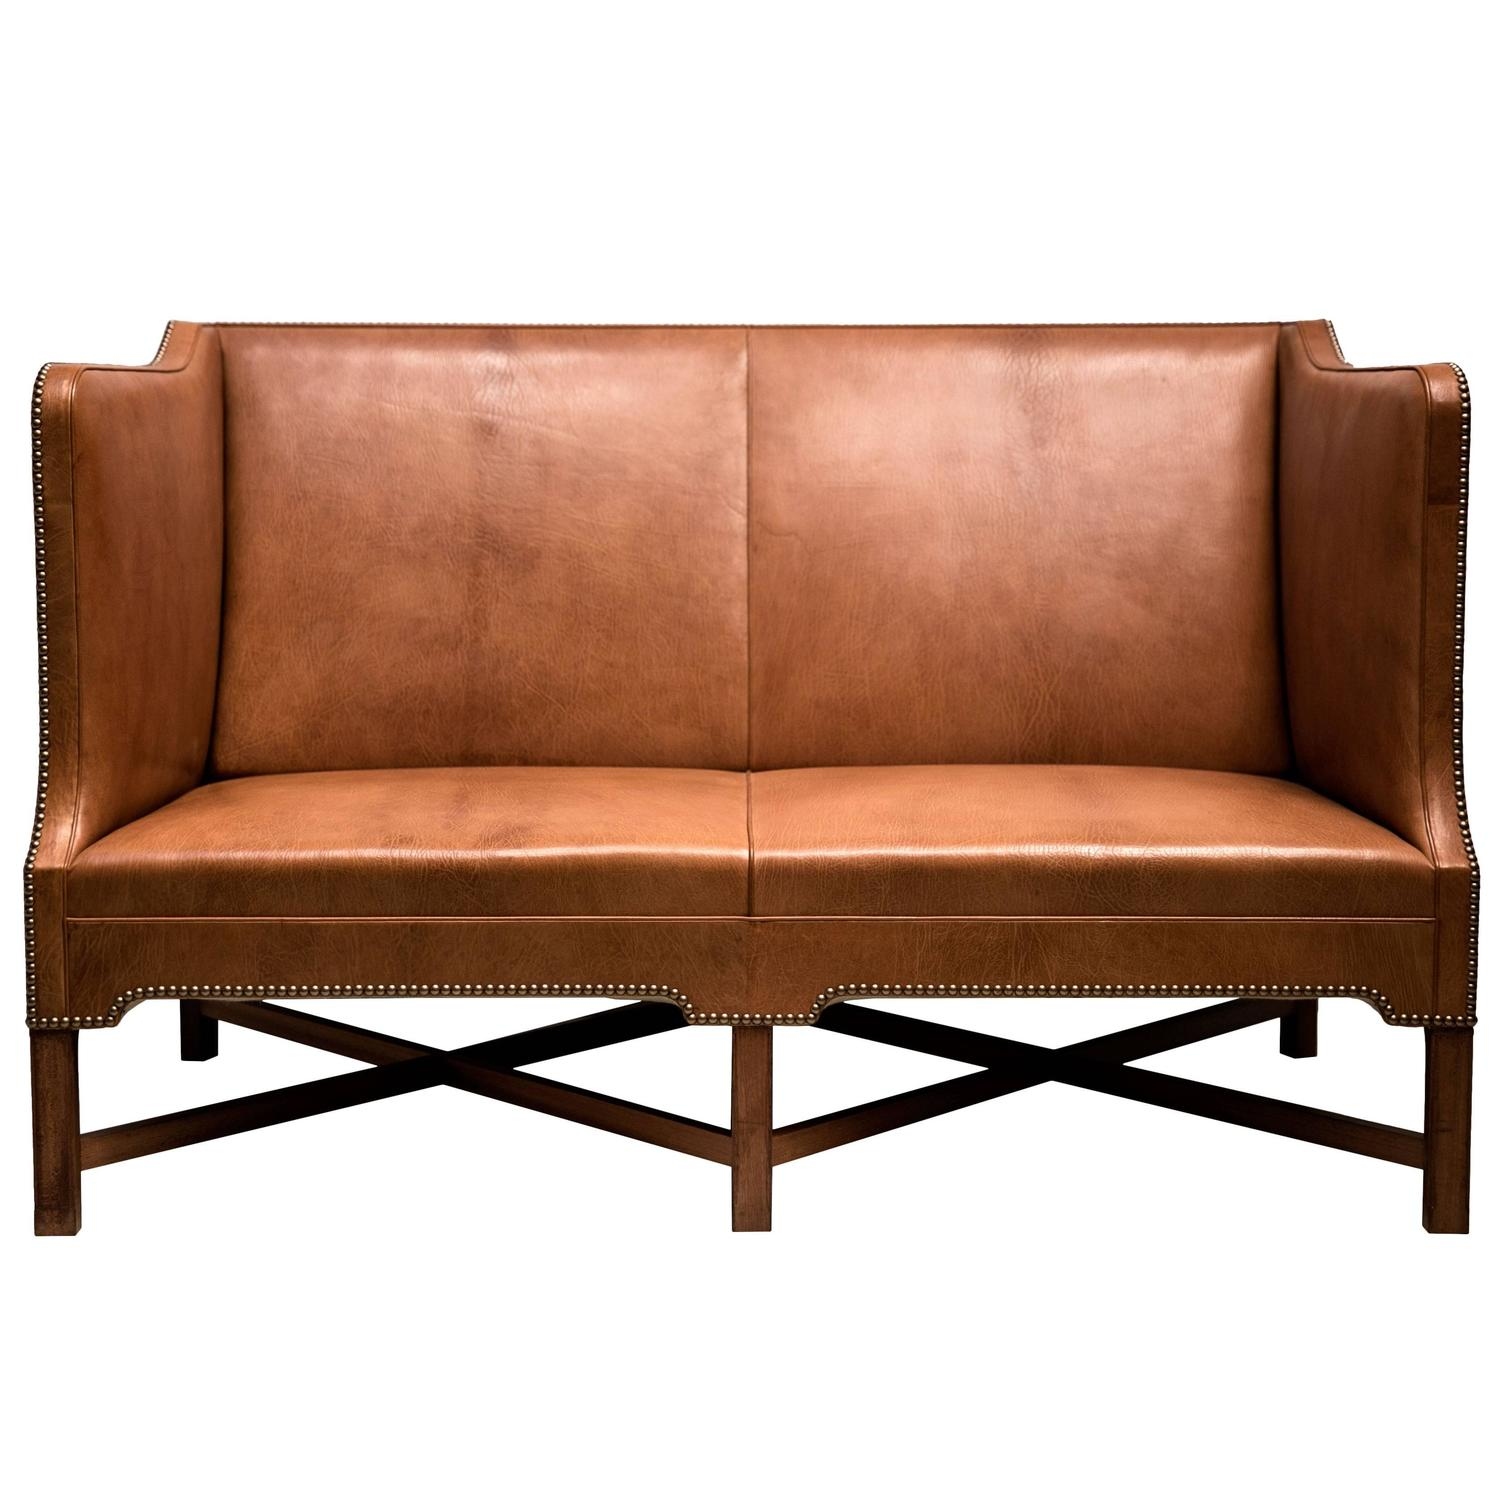 1930s Sofas 138 For Sale at 1stdibs